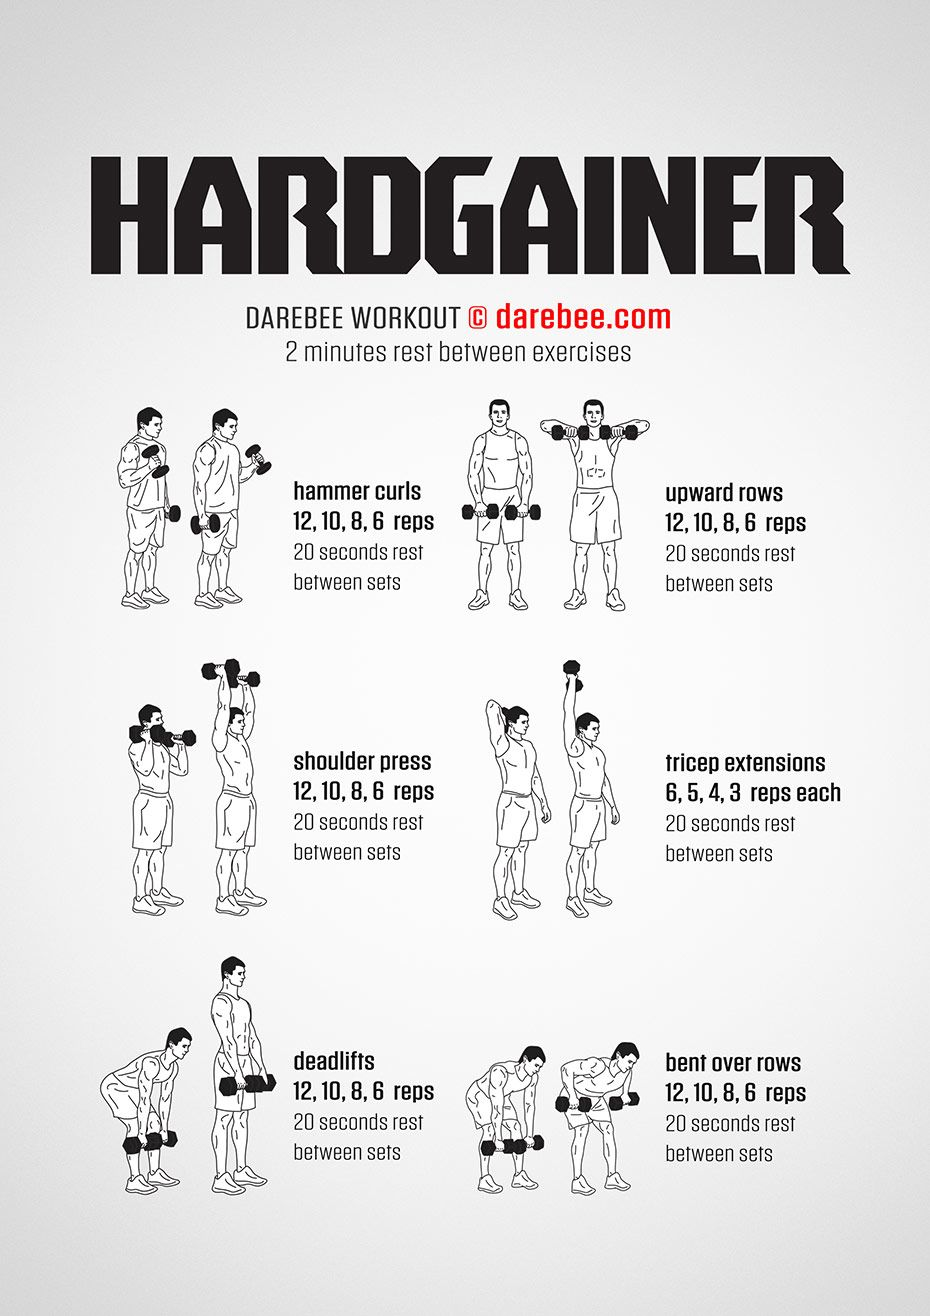 Hardgainer Workout Weights workout, Dumbell workout